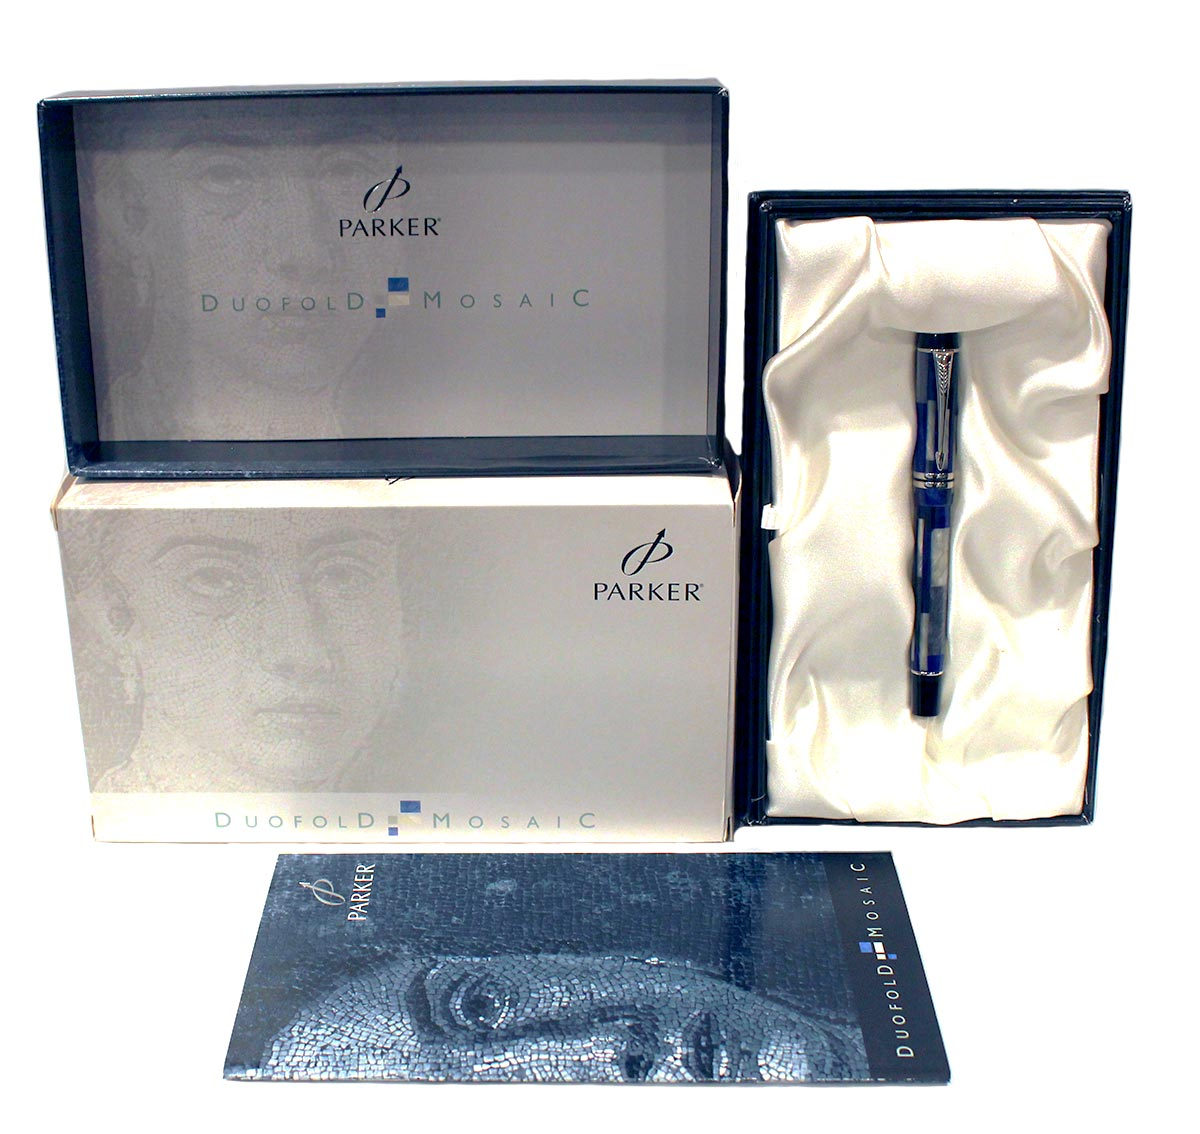 2011 PARKER DUOFOLD INTERNATIONAL BLUE MOSAIC FOUNTAIN PEN 18K NIB NEW IN BOX OFFERED BY ANTIQUE DIGGER